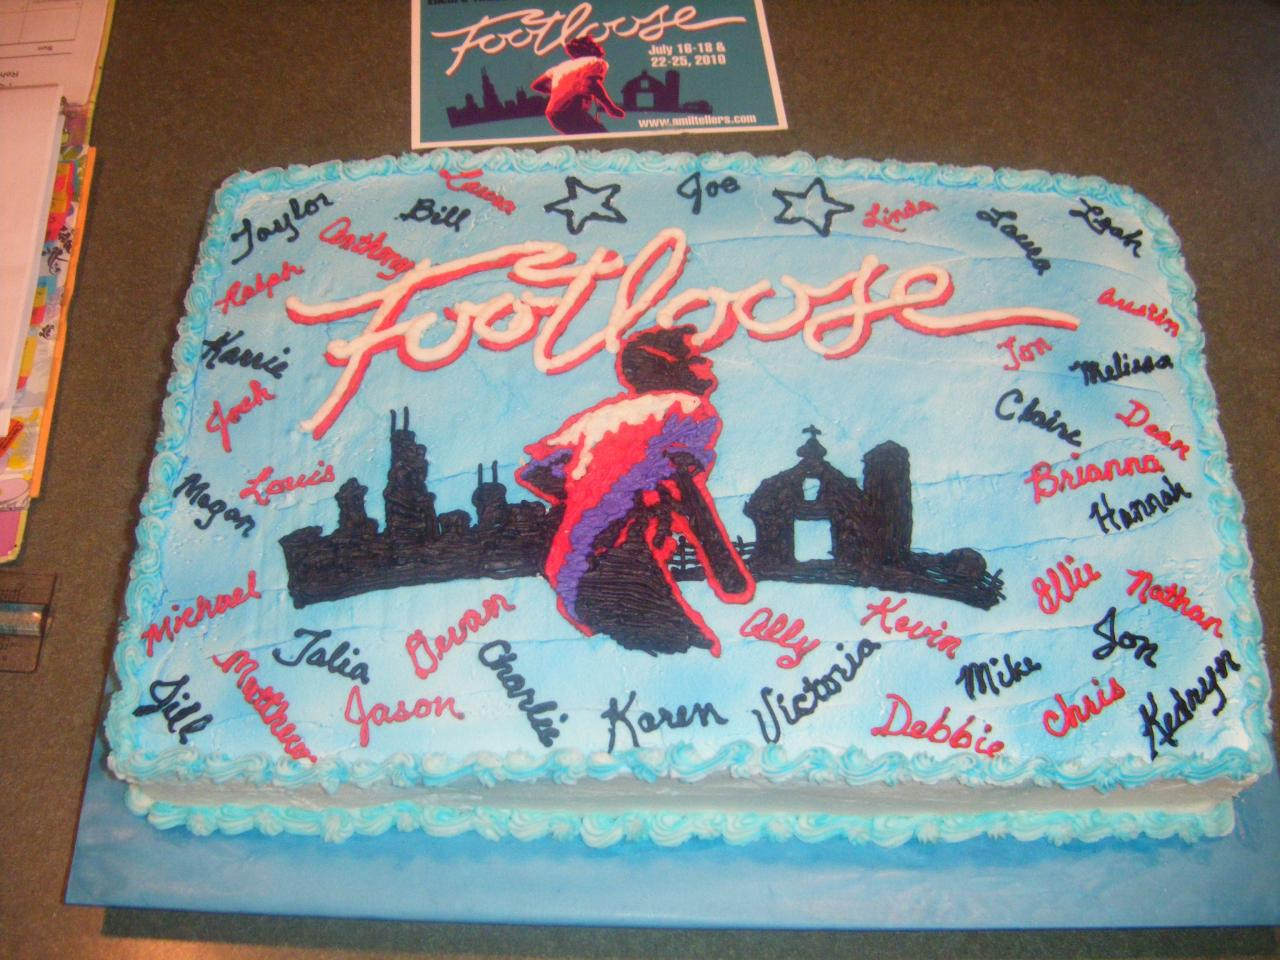 Footloose Cake